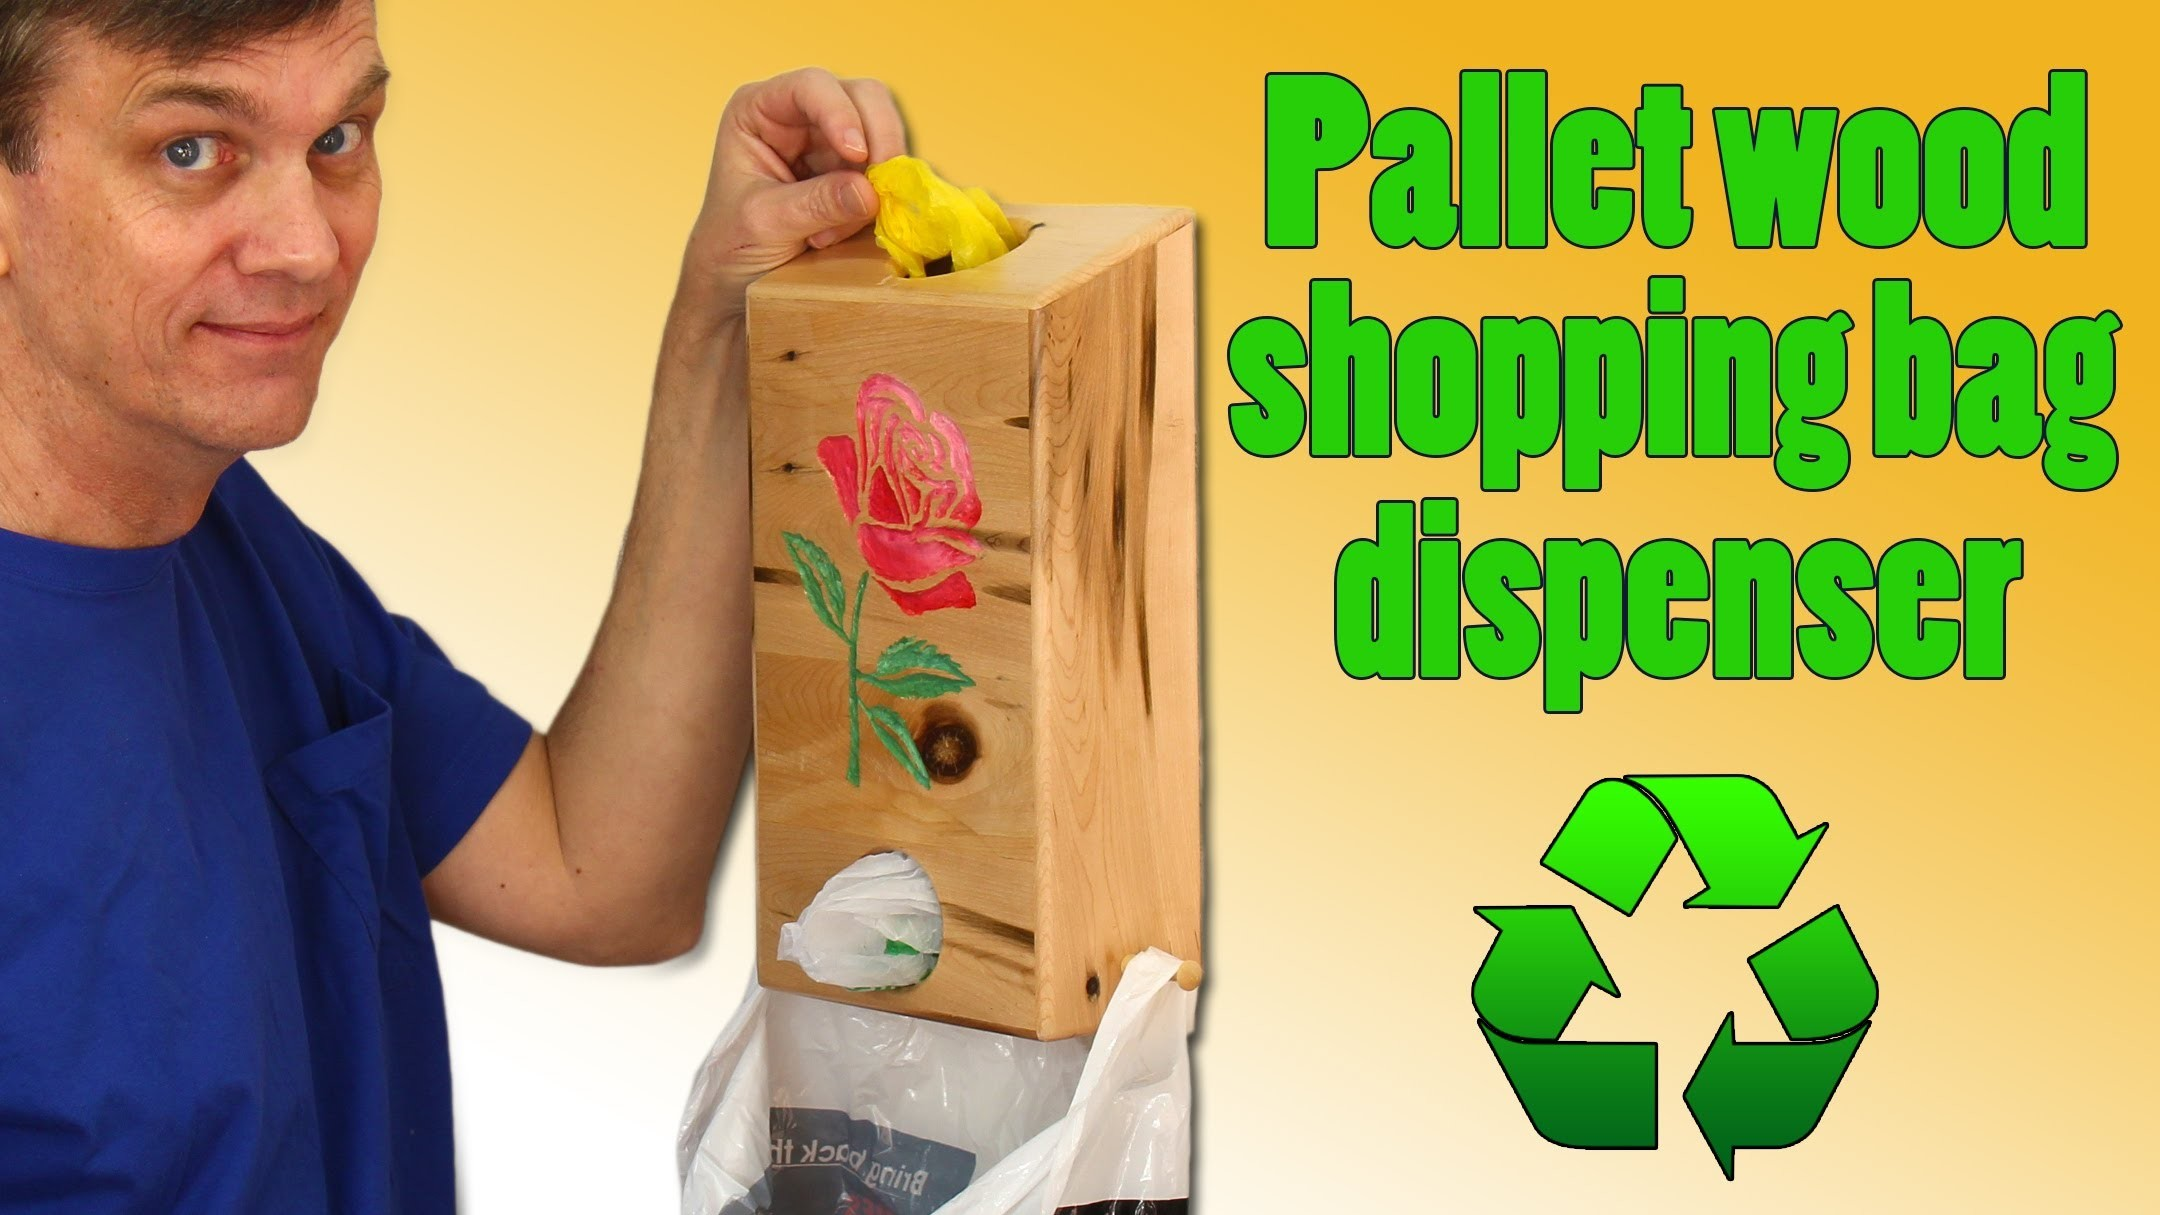 Shopping bag dispenser made from recycled pallet wood.